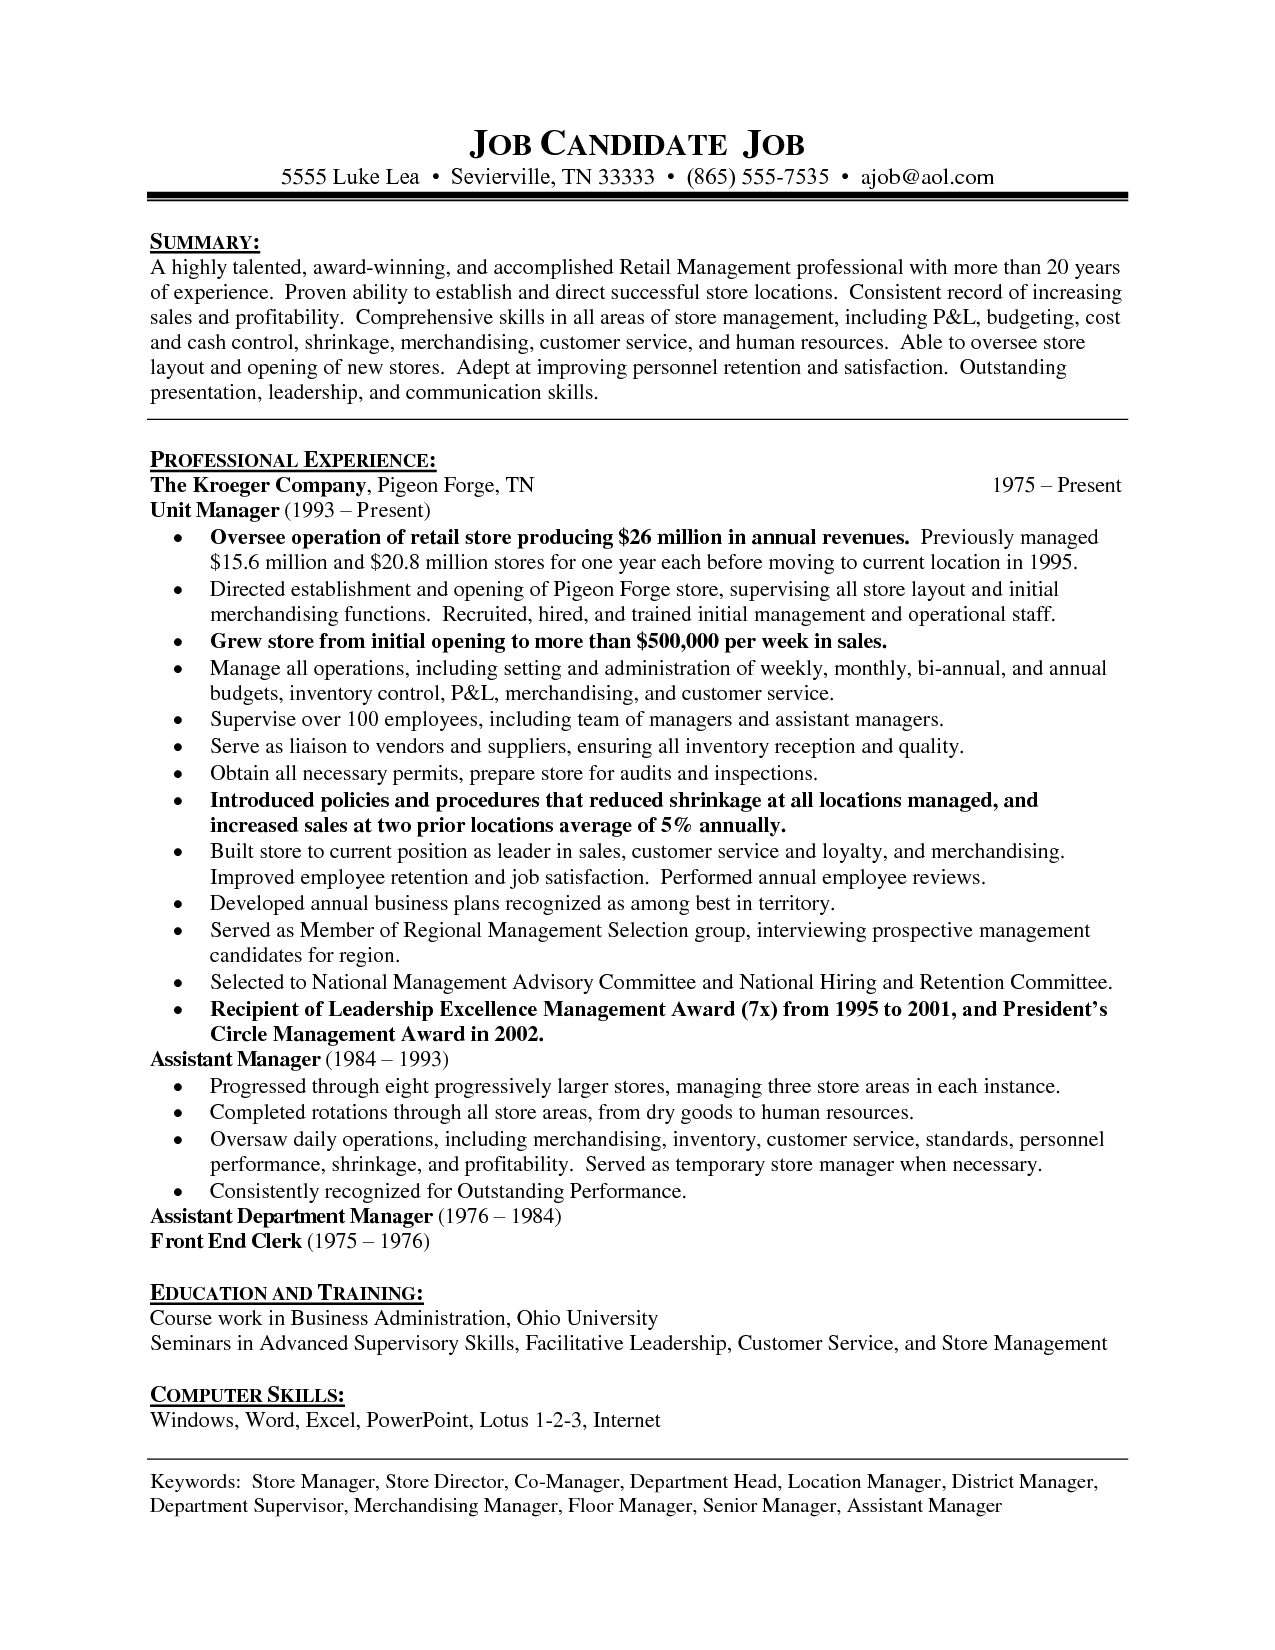 Retail Store Manager Resume Samples department store manager